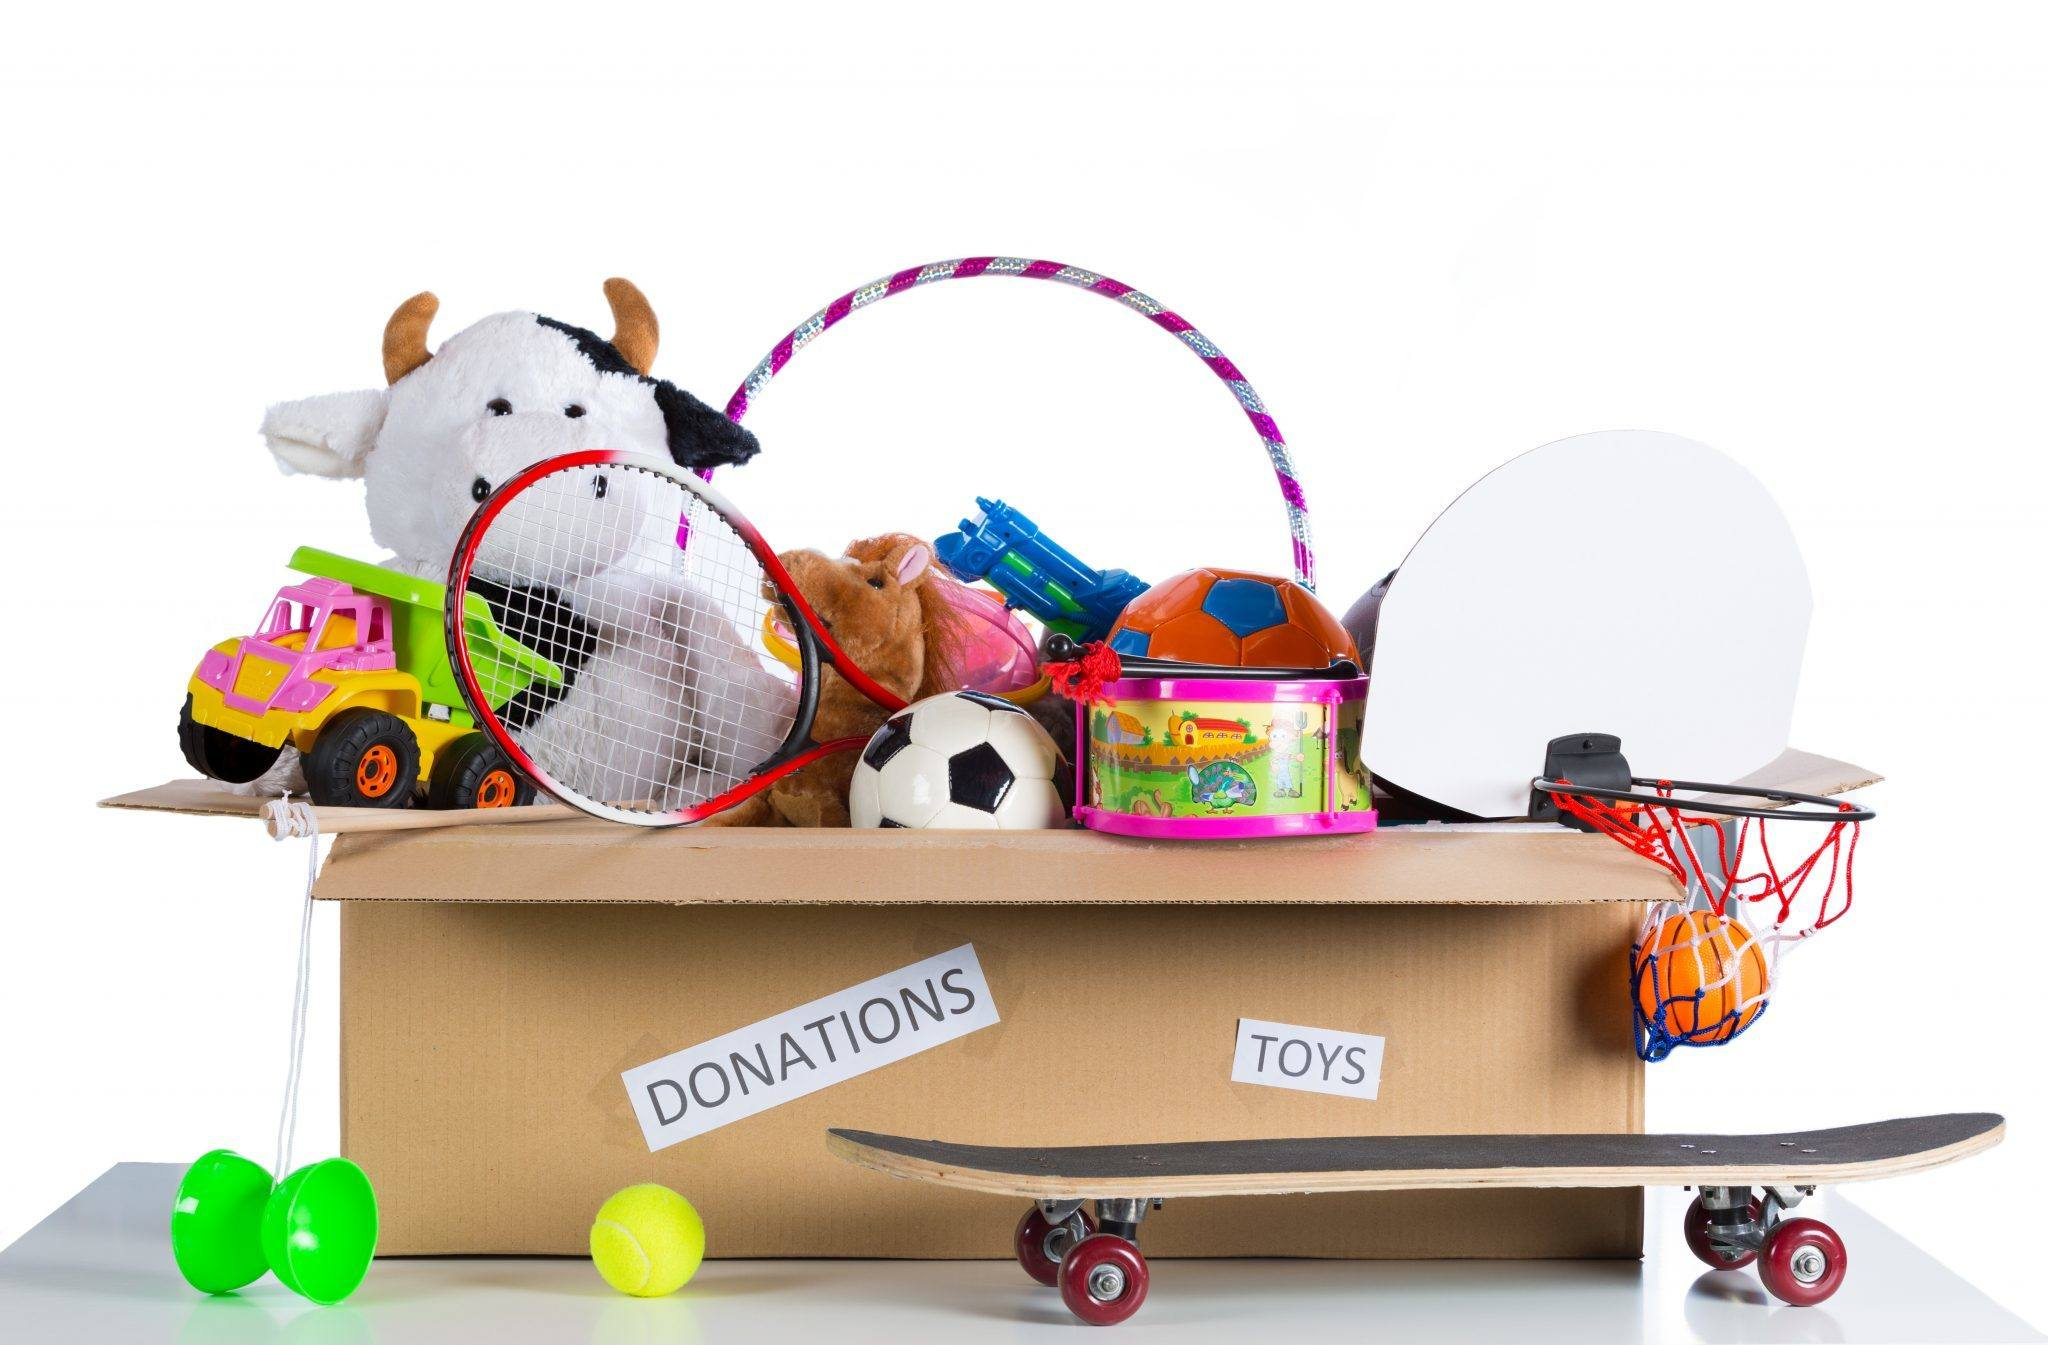 toys to donate or discard